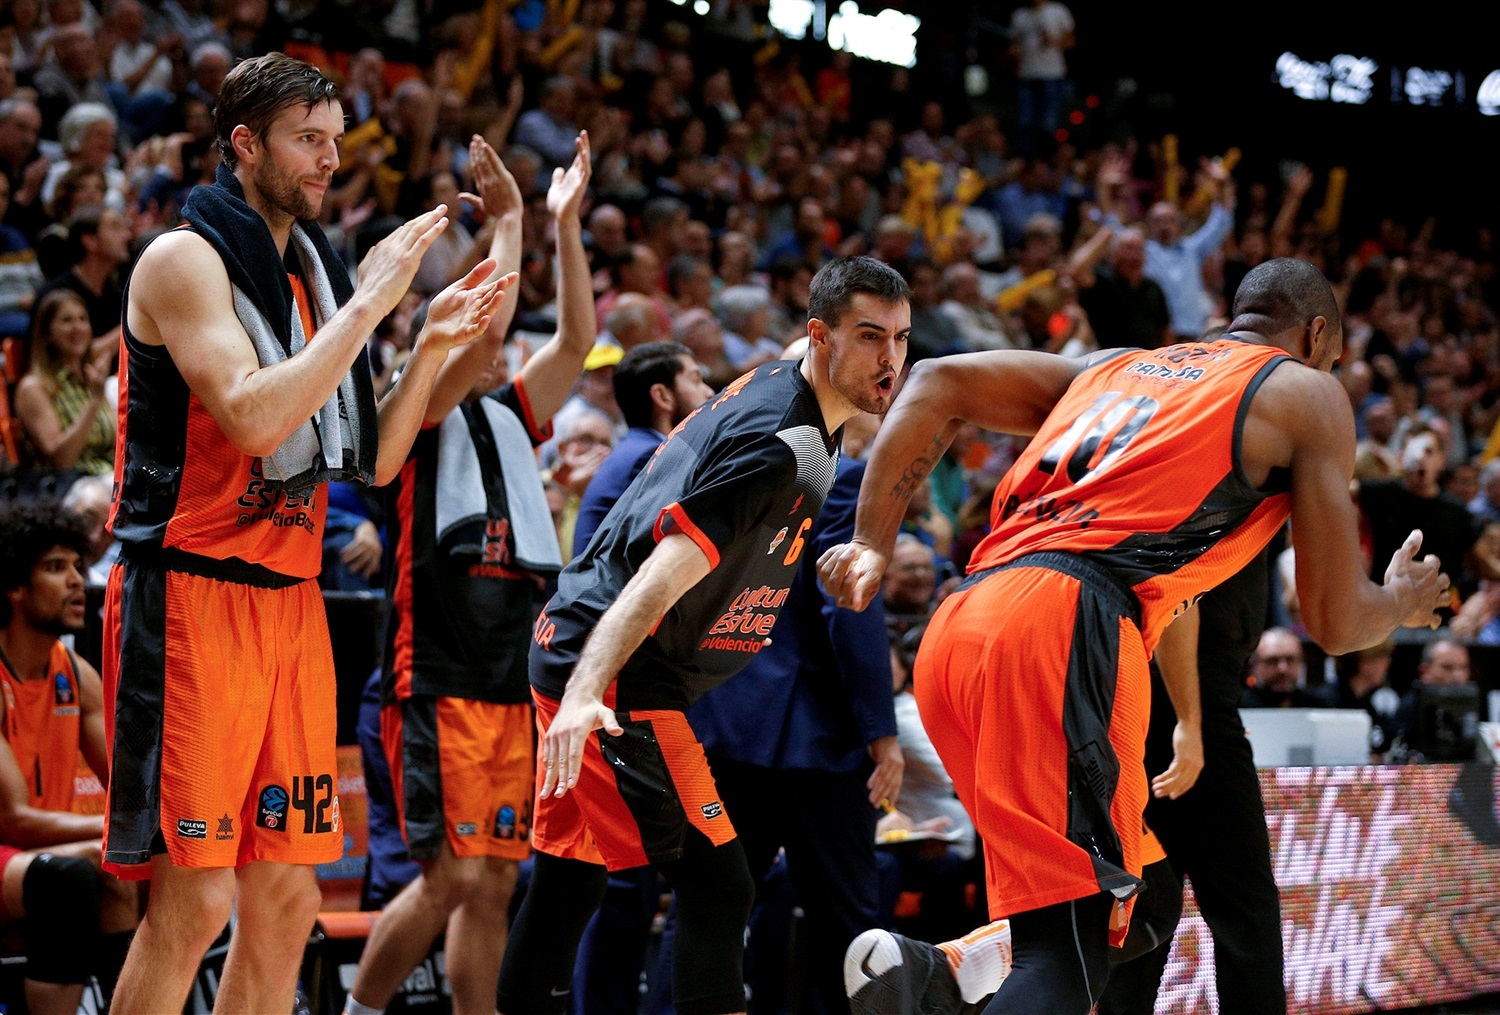 Valencia Basket celebrates (photo Valencia) - EC18